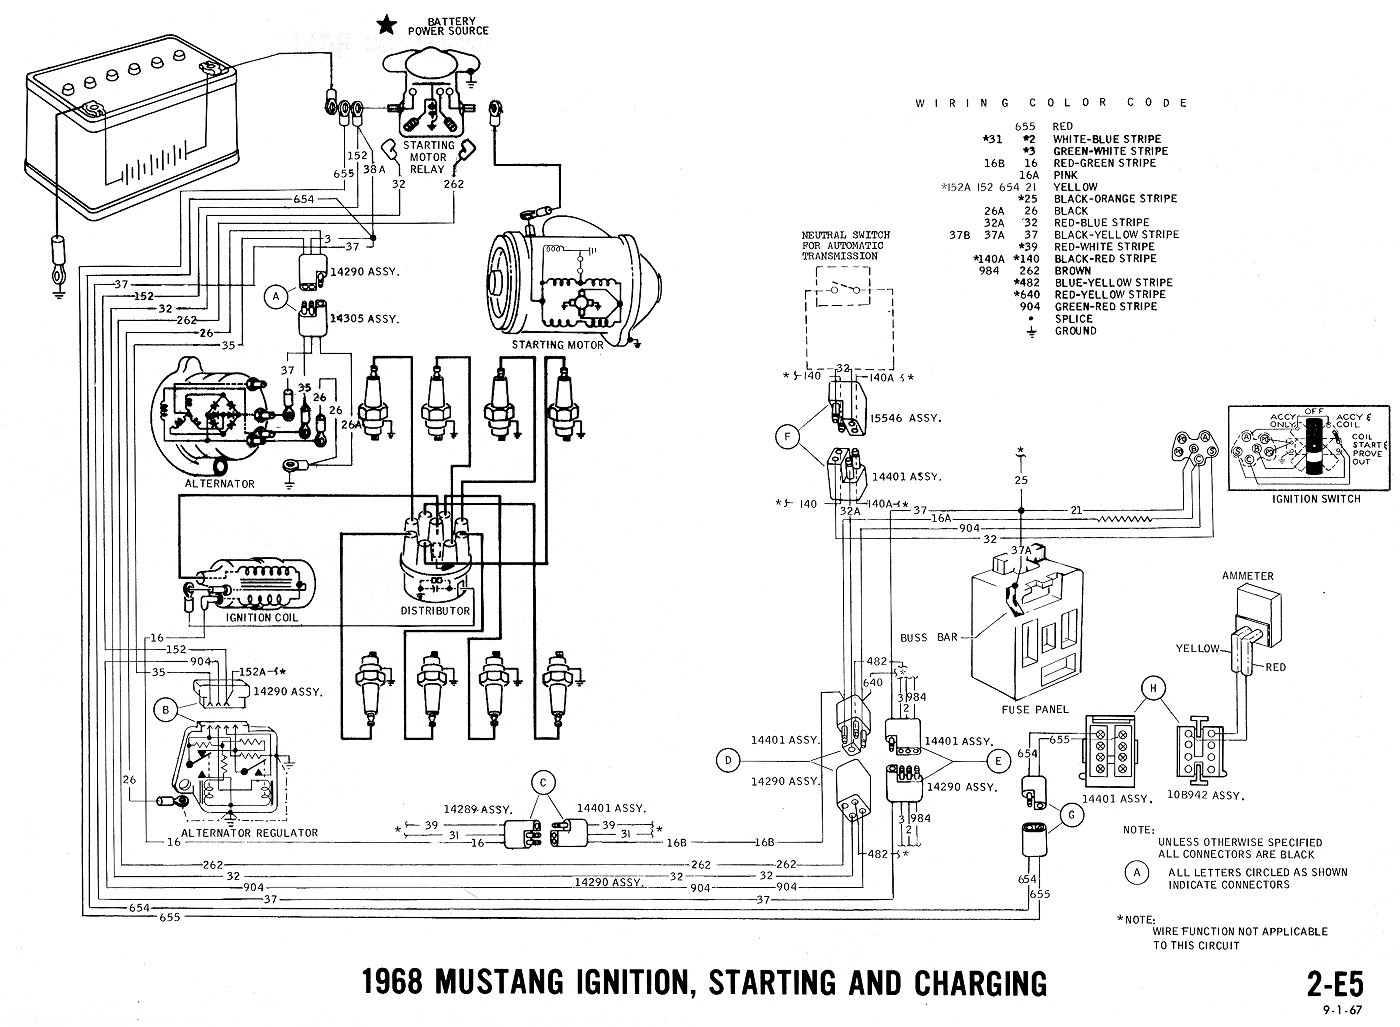 1965 mustang ignition wiring diagram Download-1965 Mustang Wiring Diagram New 1965 Mustang Wiring Diagram Blurts 8-c